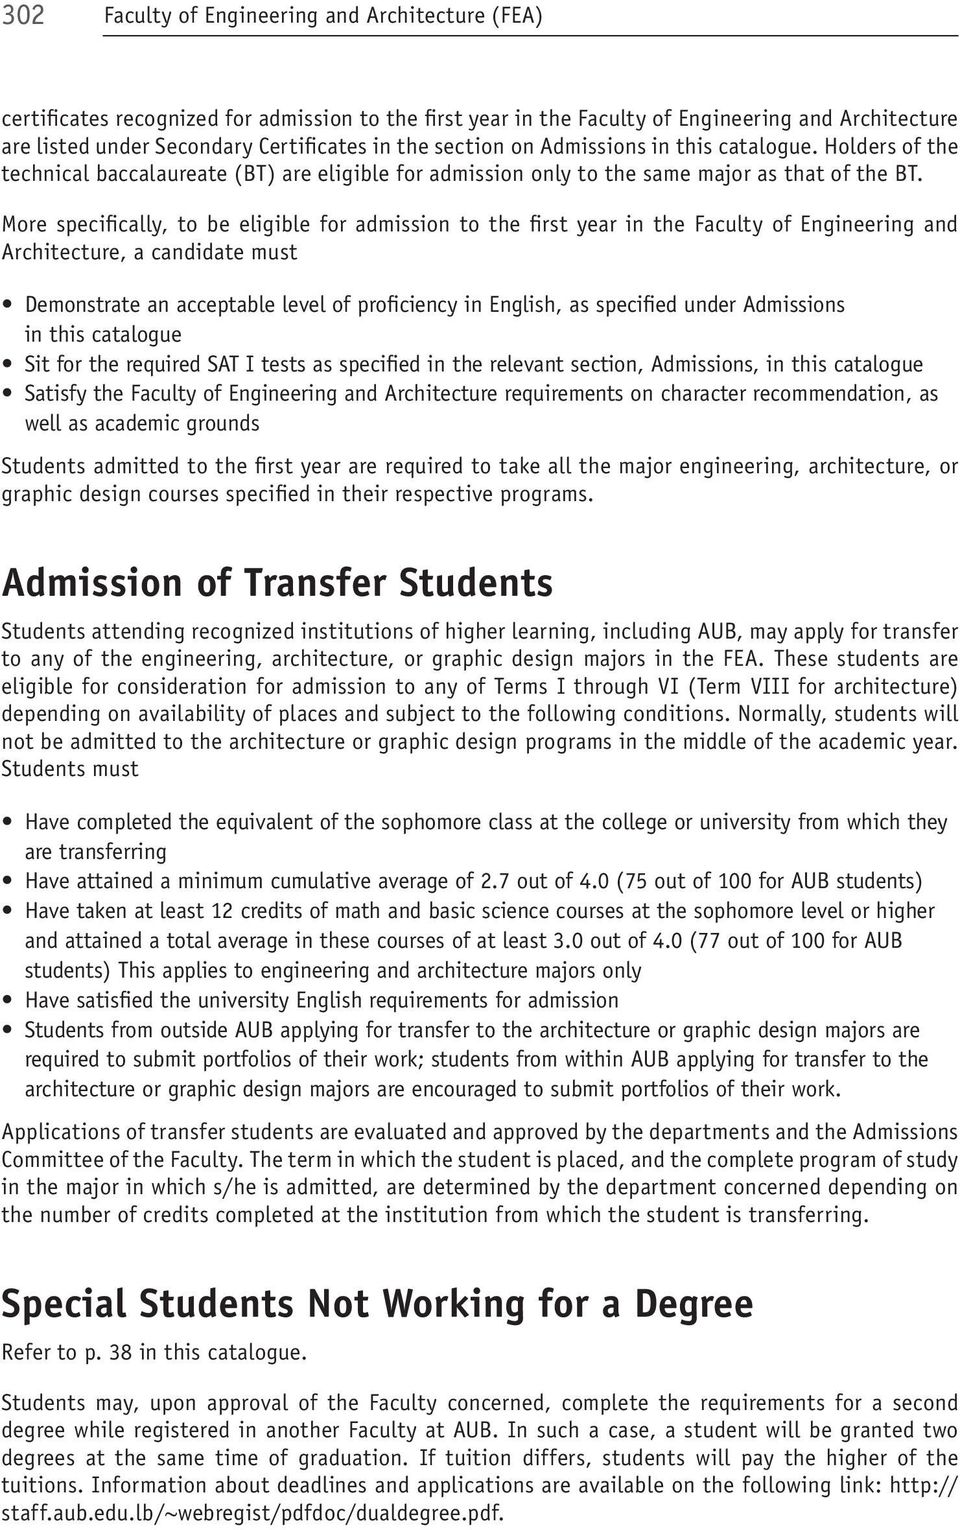 More specifically, to be eligible for admission to the first year in the Faculty of Engineering and Architecture, a candidate must Demonstrate an acceptable level of proficiency in English, as